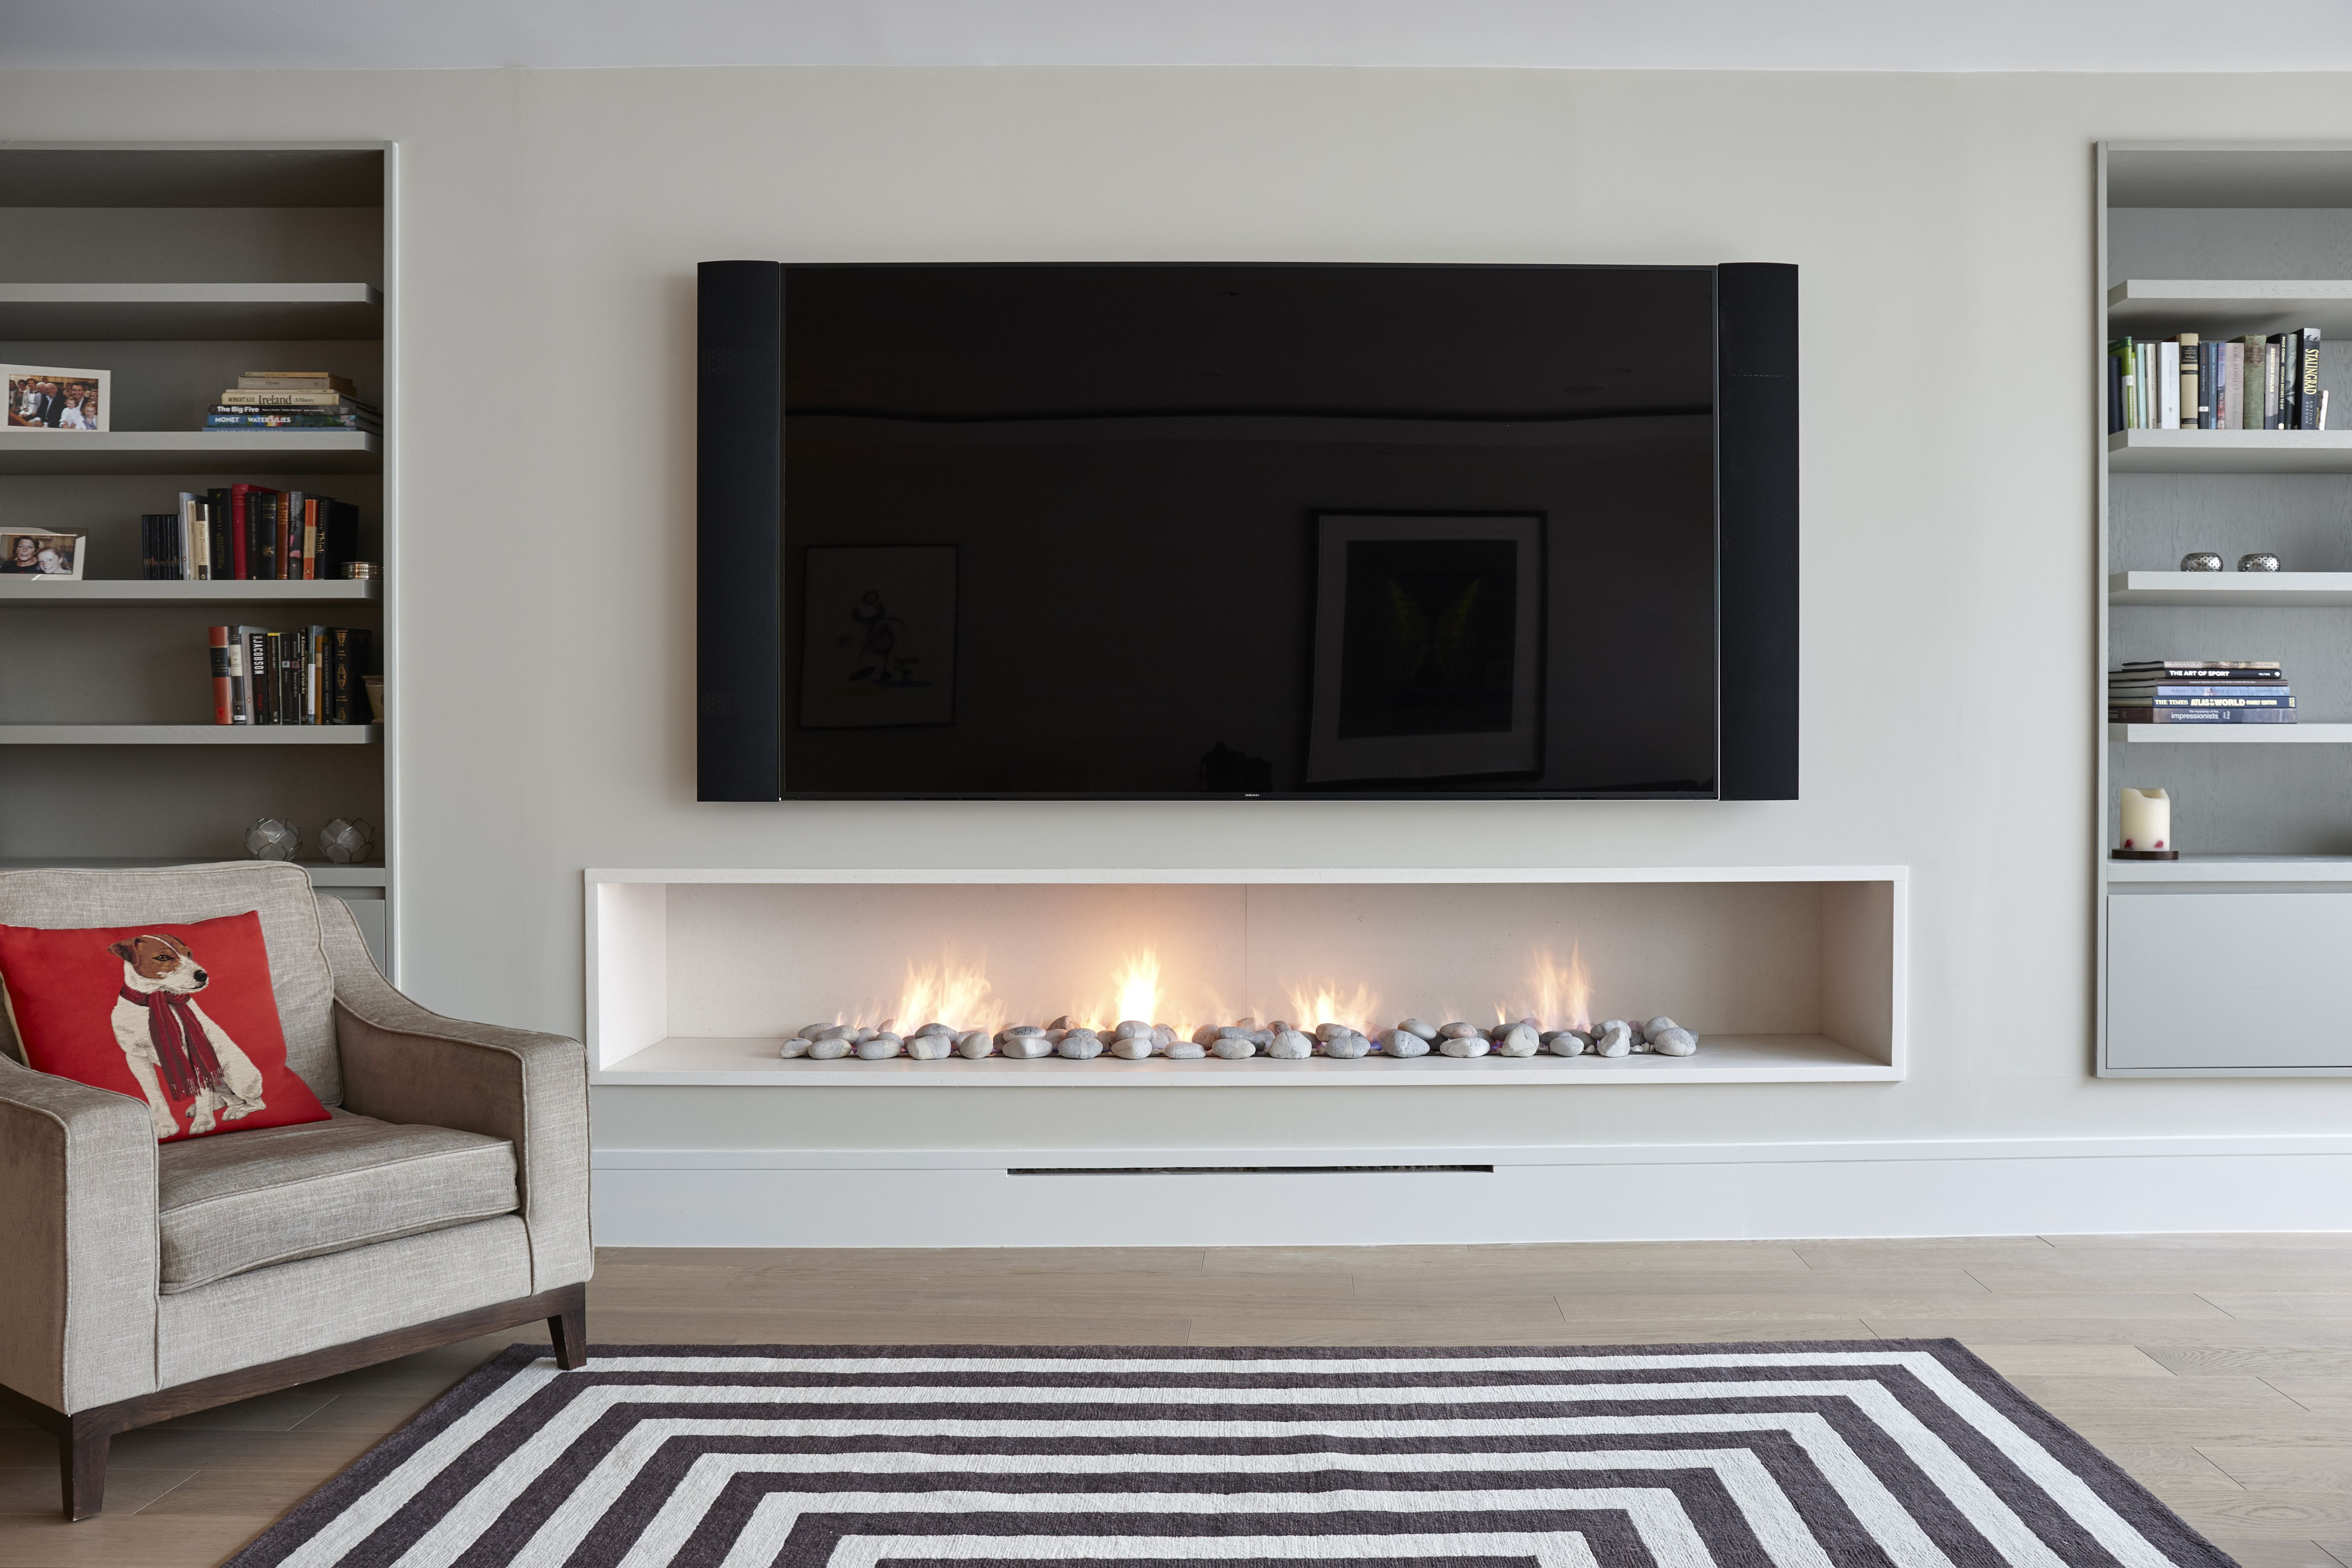 Pictures Of Living Rooms With Fireplaces And Tv Grey Sofa Room Decor 17 Modern Fireplace Tile Ideas Best Design Home Designs Glass For The Contemporary